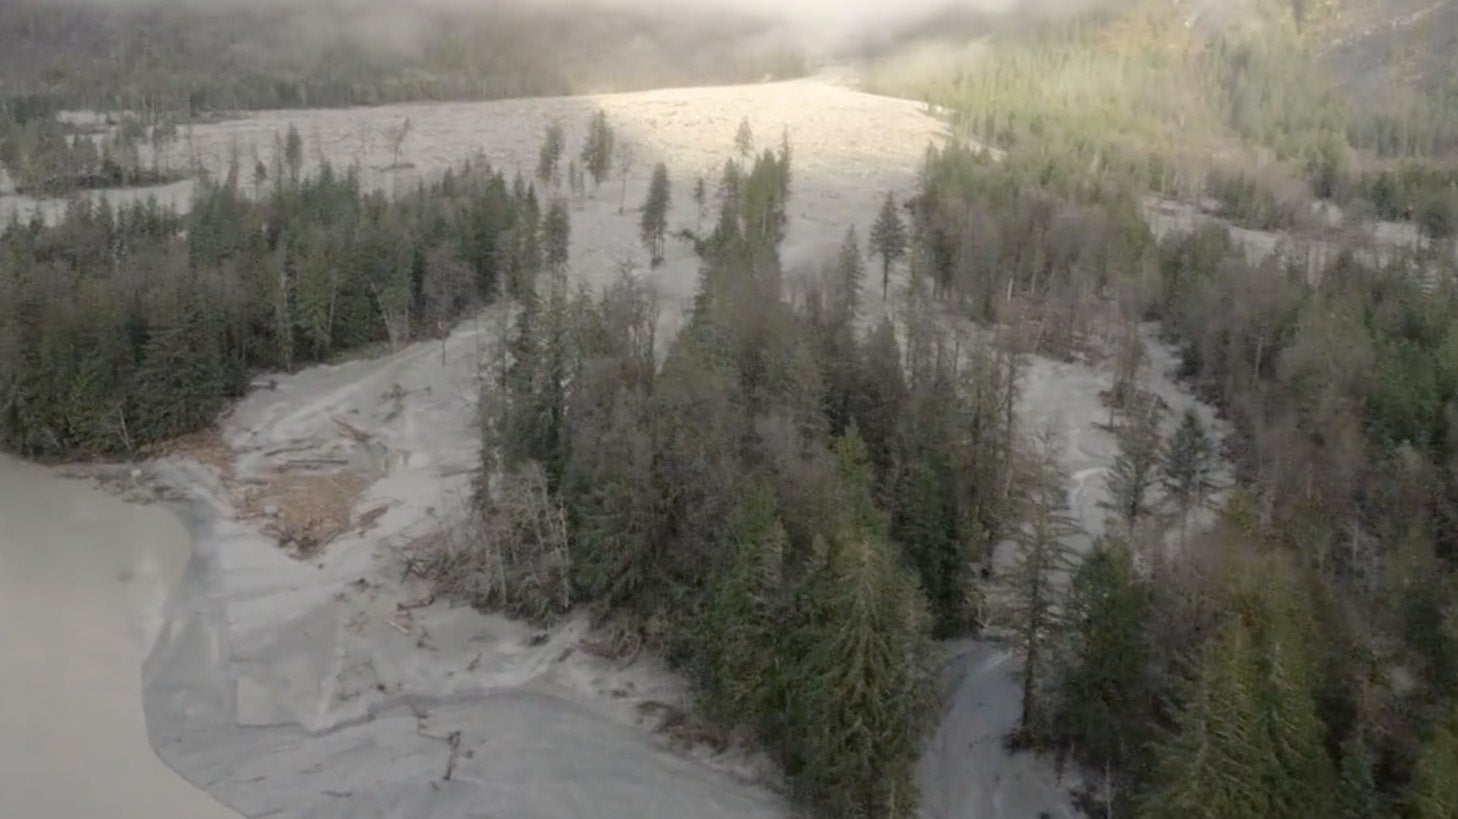 Landslide Cooled Off Waters Warmed By Marine Heat Wave, Scientist Says | The Weather Channel - Articles from The Weather Channel | weather.com